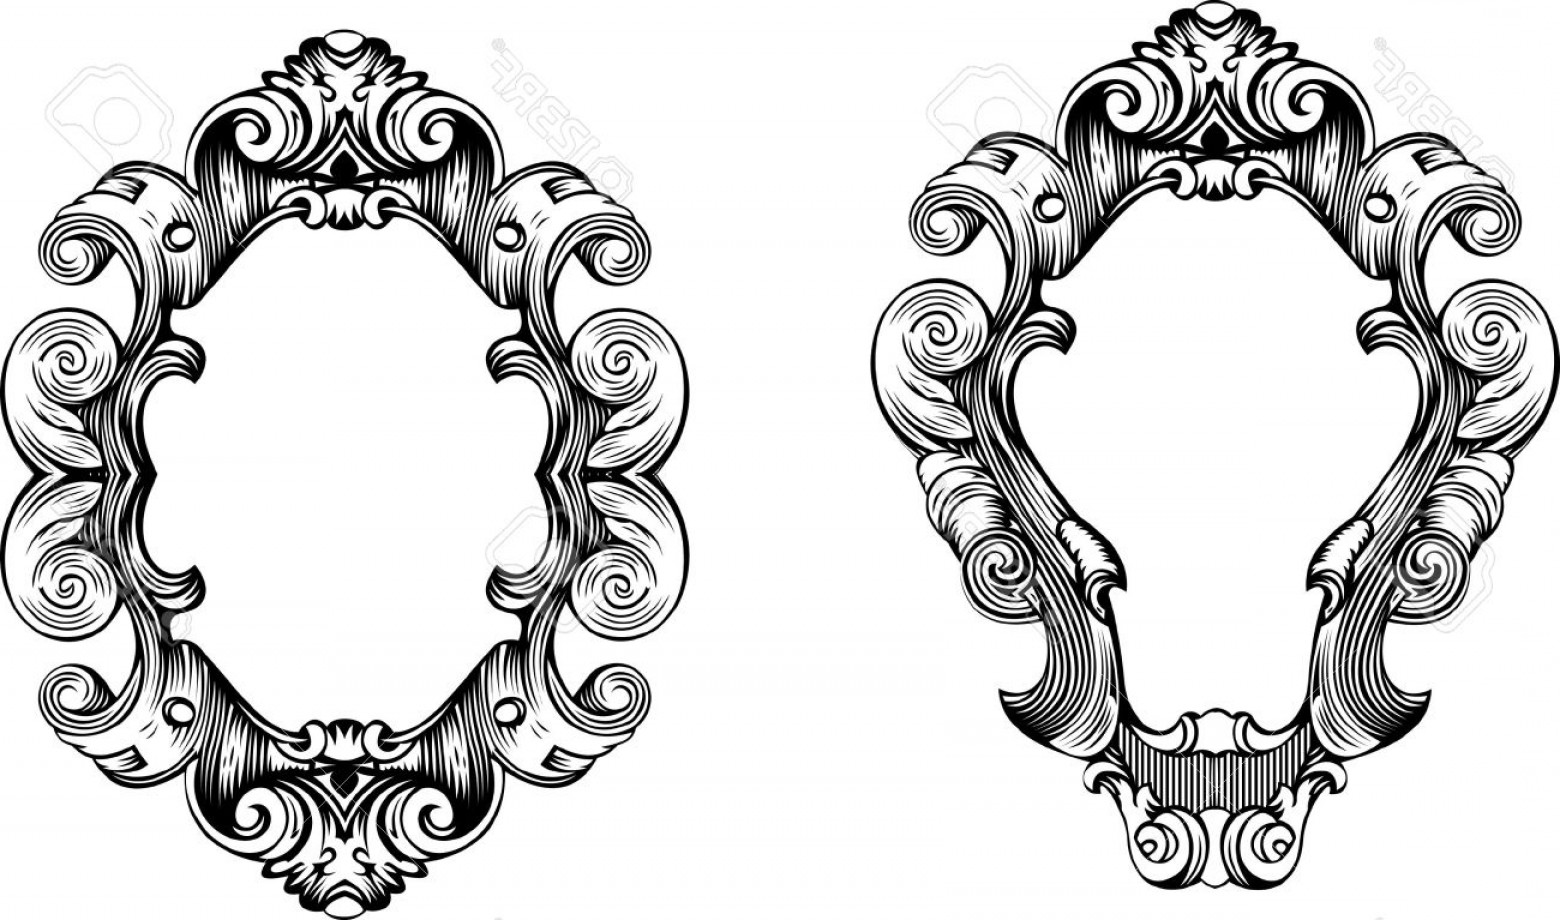 Baroque Vector Clip Art: Phototwo Elegant Baroque Ornate Curves Engraving Frames